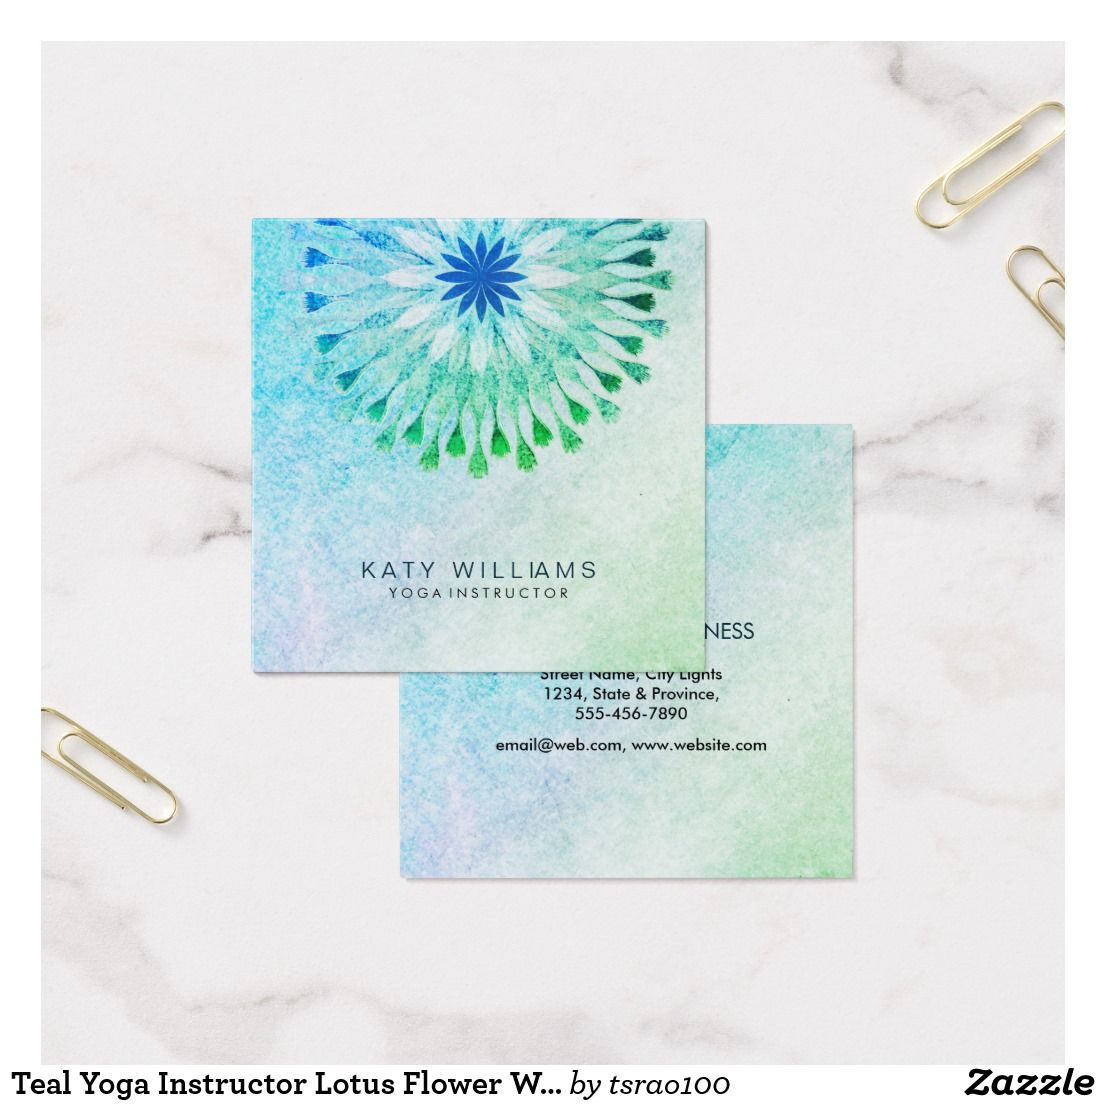 Teal Yoga Instructor Lotus Flower Watercolor Beach Square Business